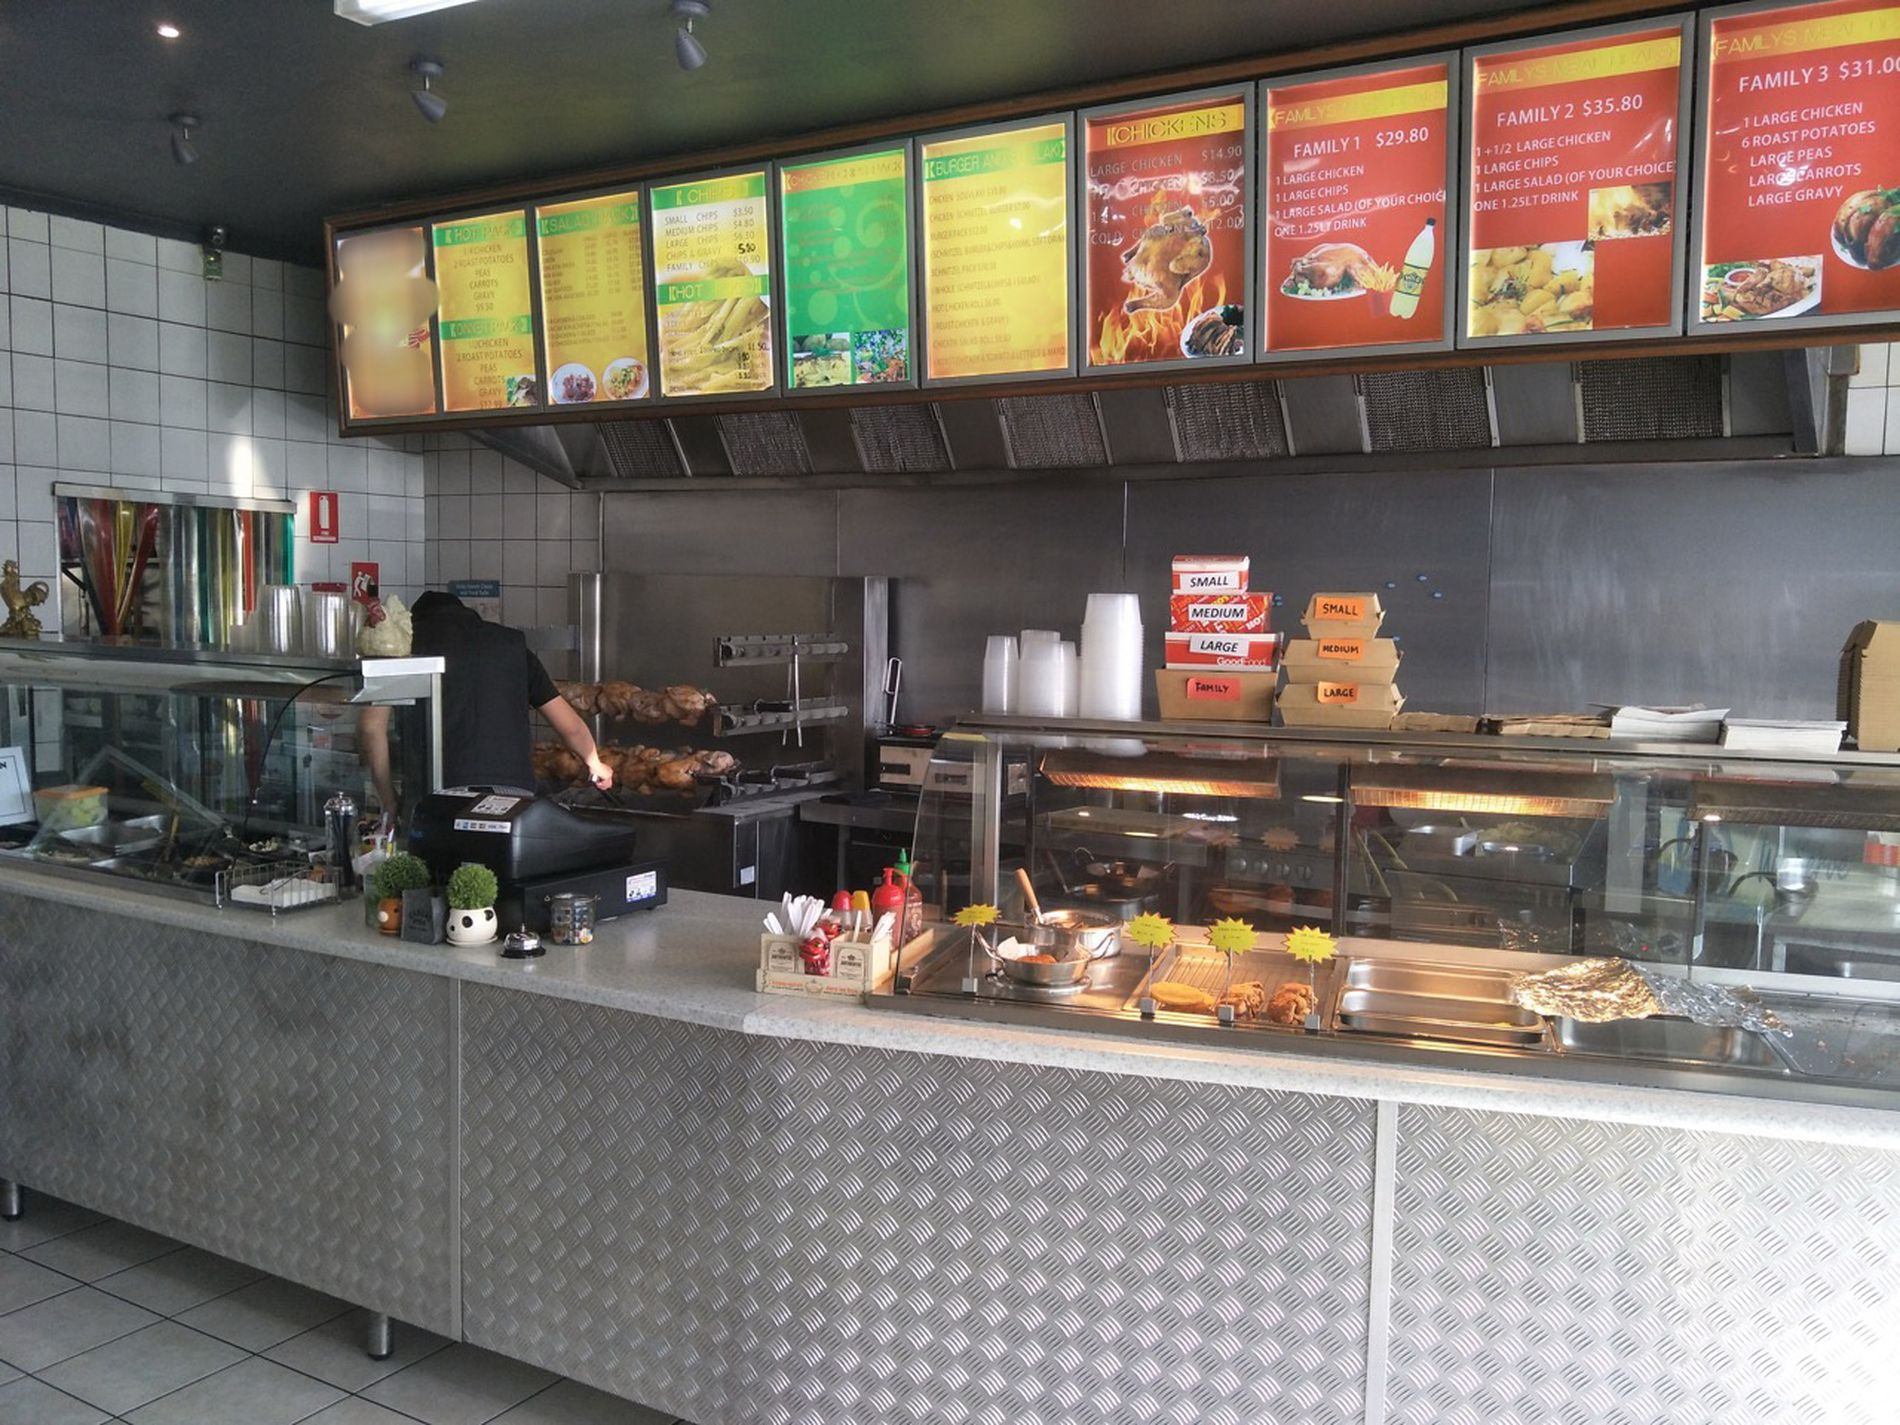 SOLD - Charcoal Chicken Shop for Sale, Only 5 Days trading